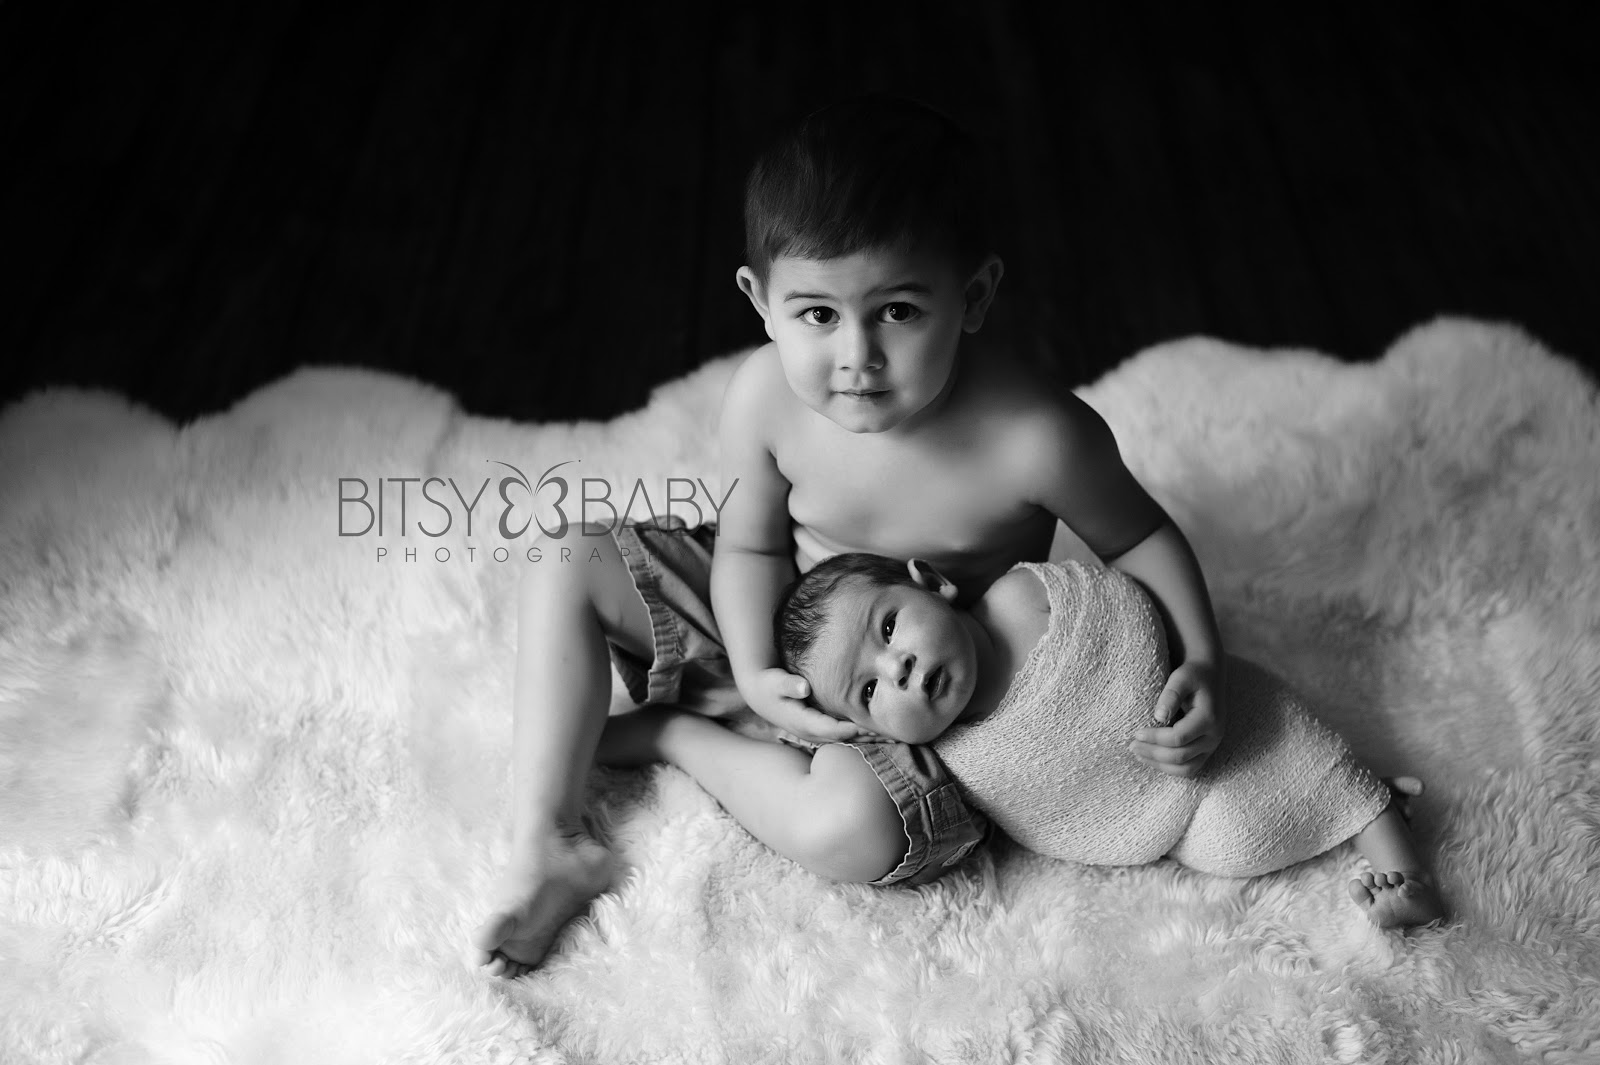 Newborn Pictures with Siblings http://blog.bitsybaby.com/2013/01/baby-photographers-favorite-gift-idea.html